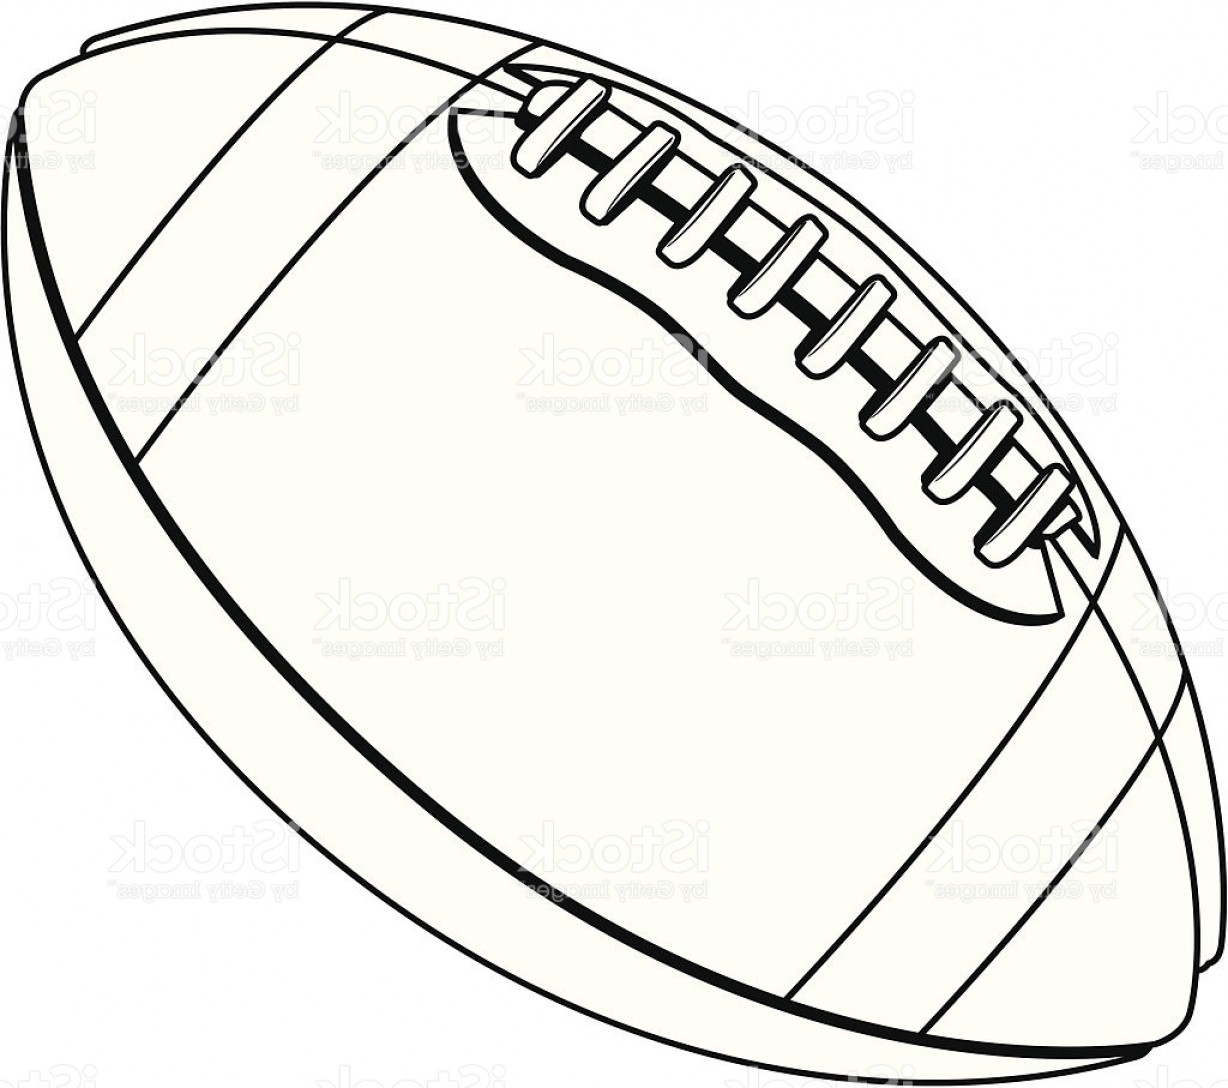 Black And White Vector American Football: Vector Football Black And White Gm